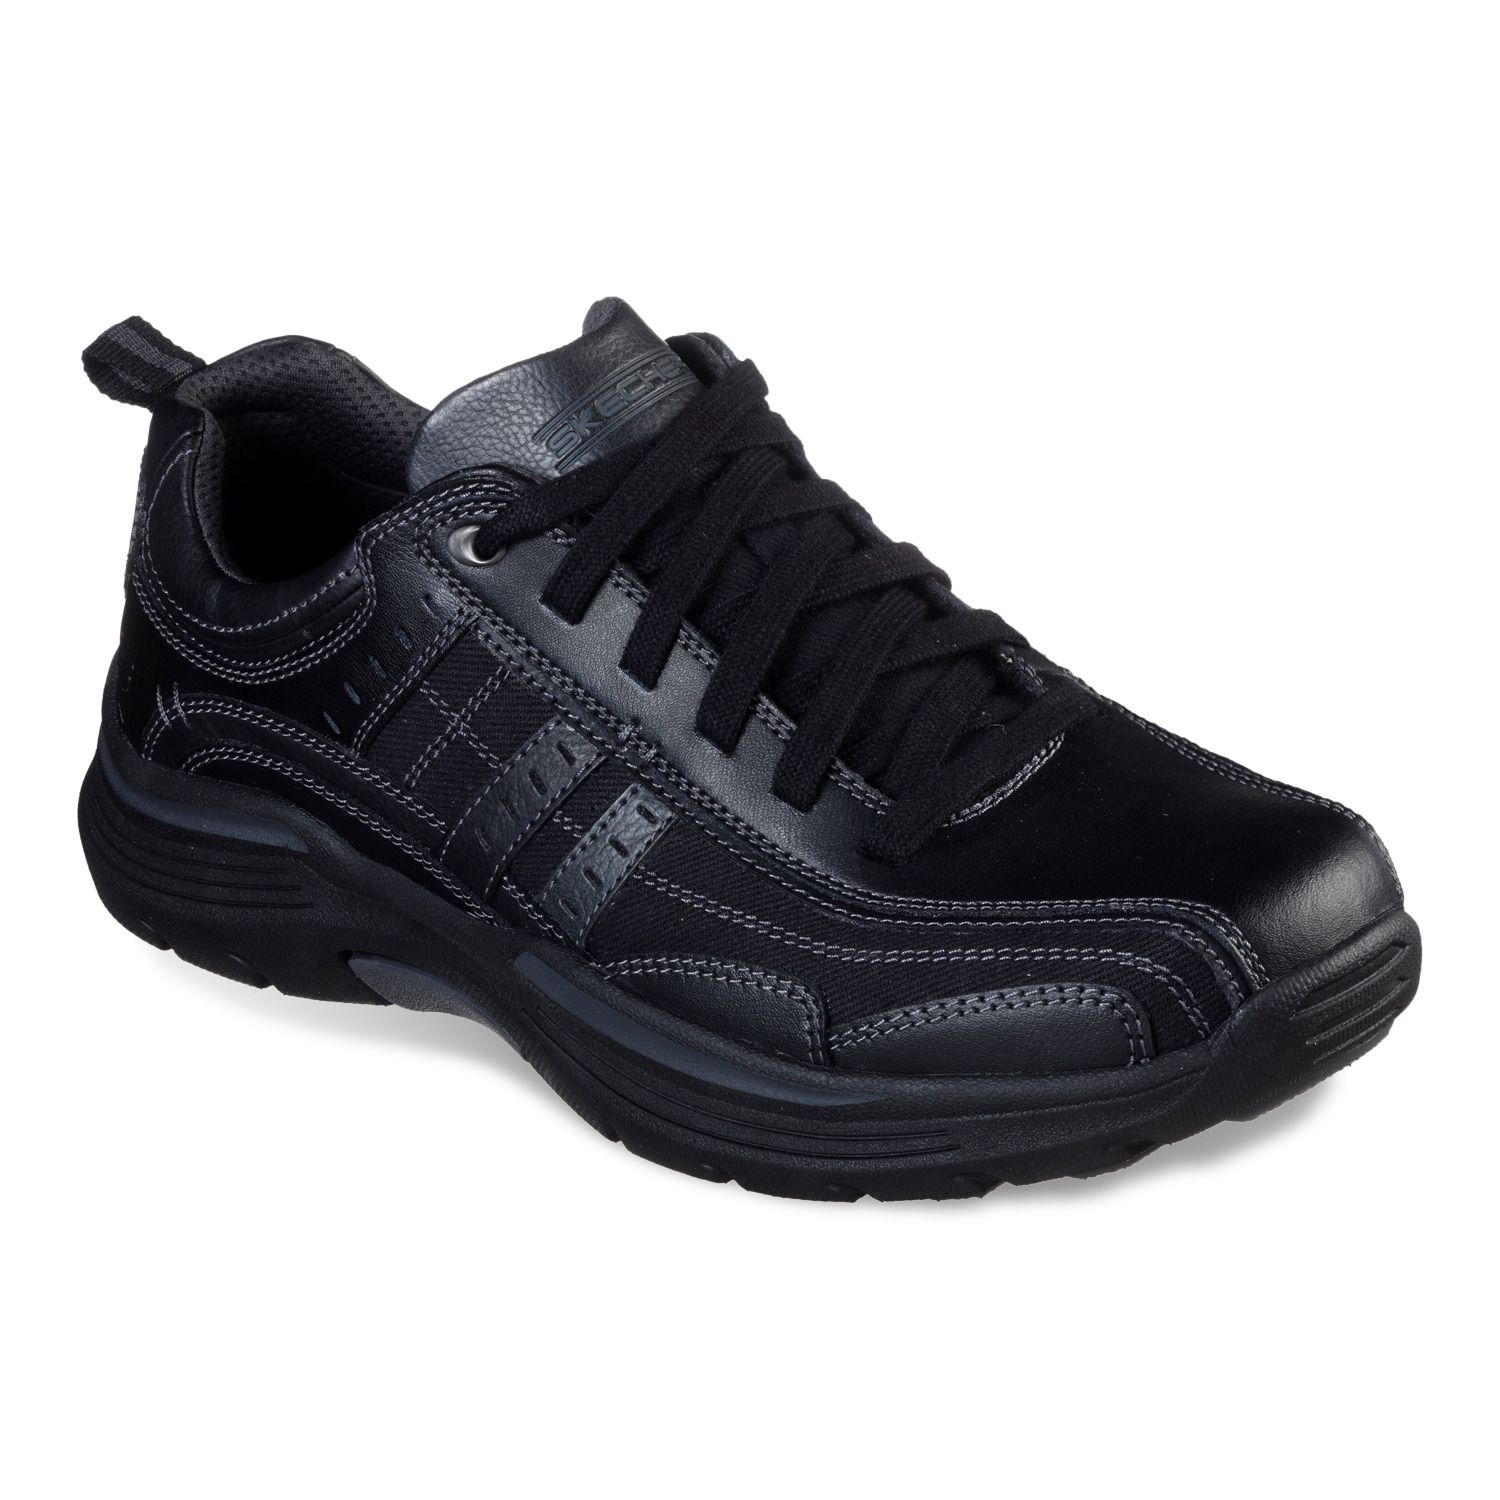 skechers relaxed fit levoy men's shoes black